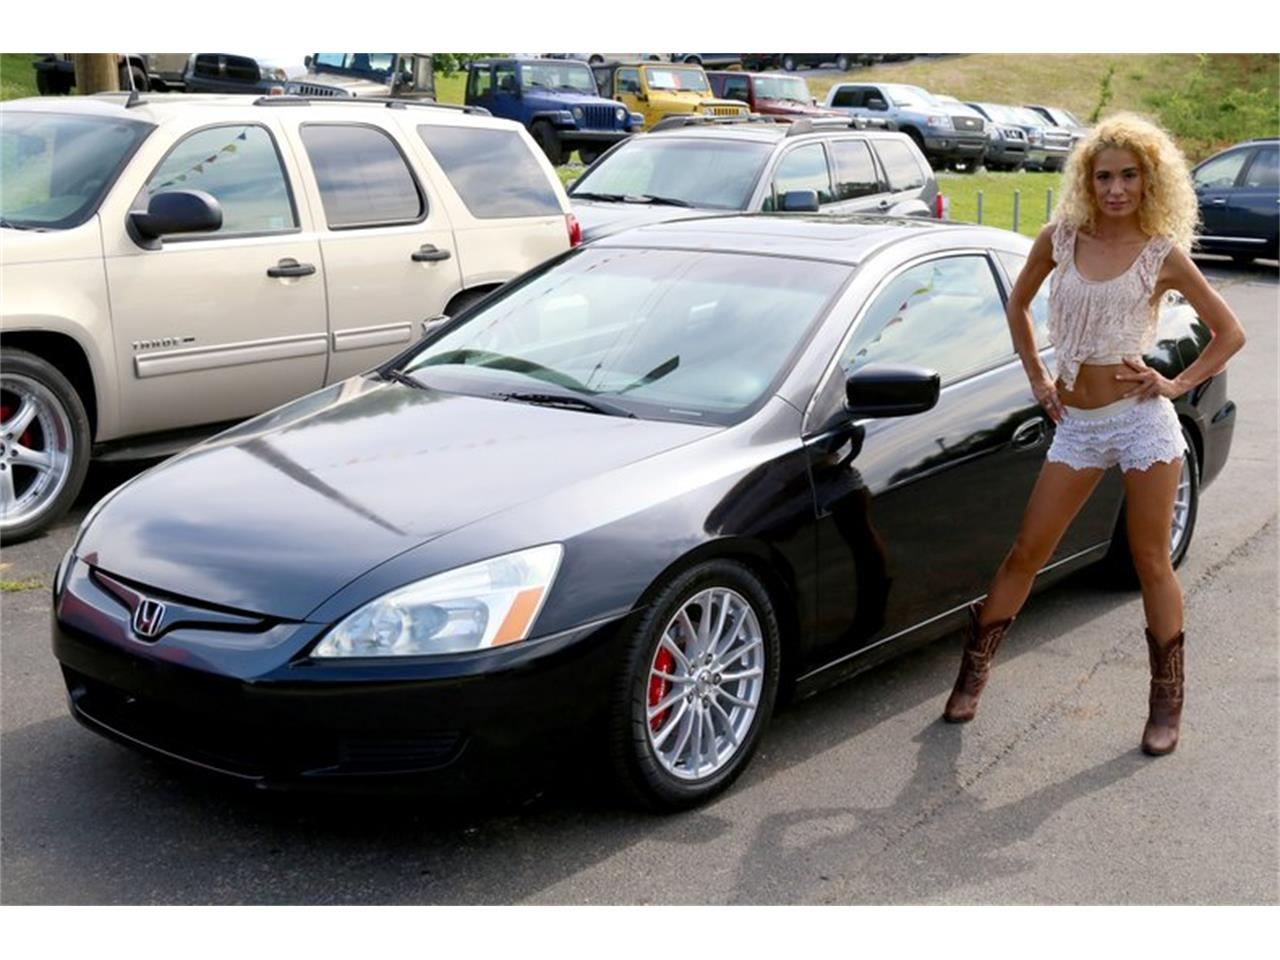 Large Picture of 2004 Accord located in Tennessee - $5,995.00 - OH0M